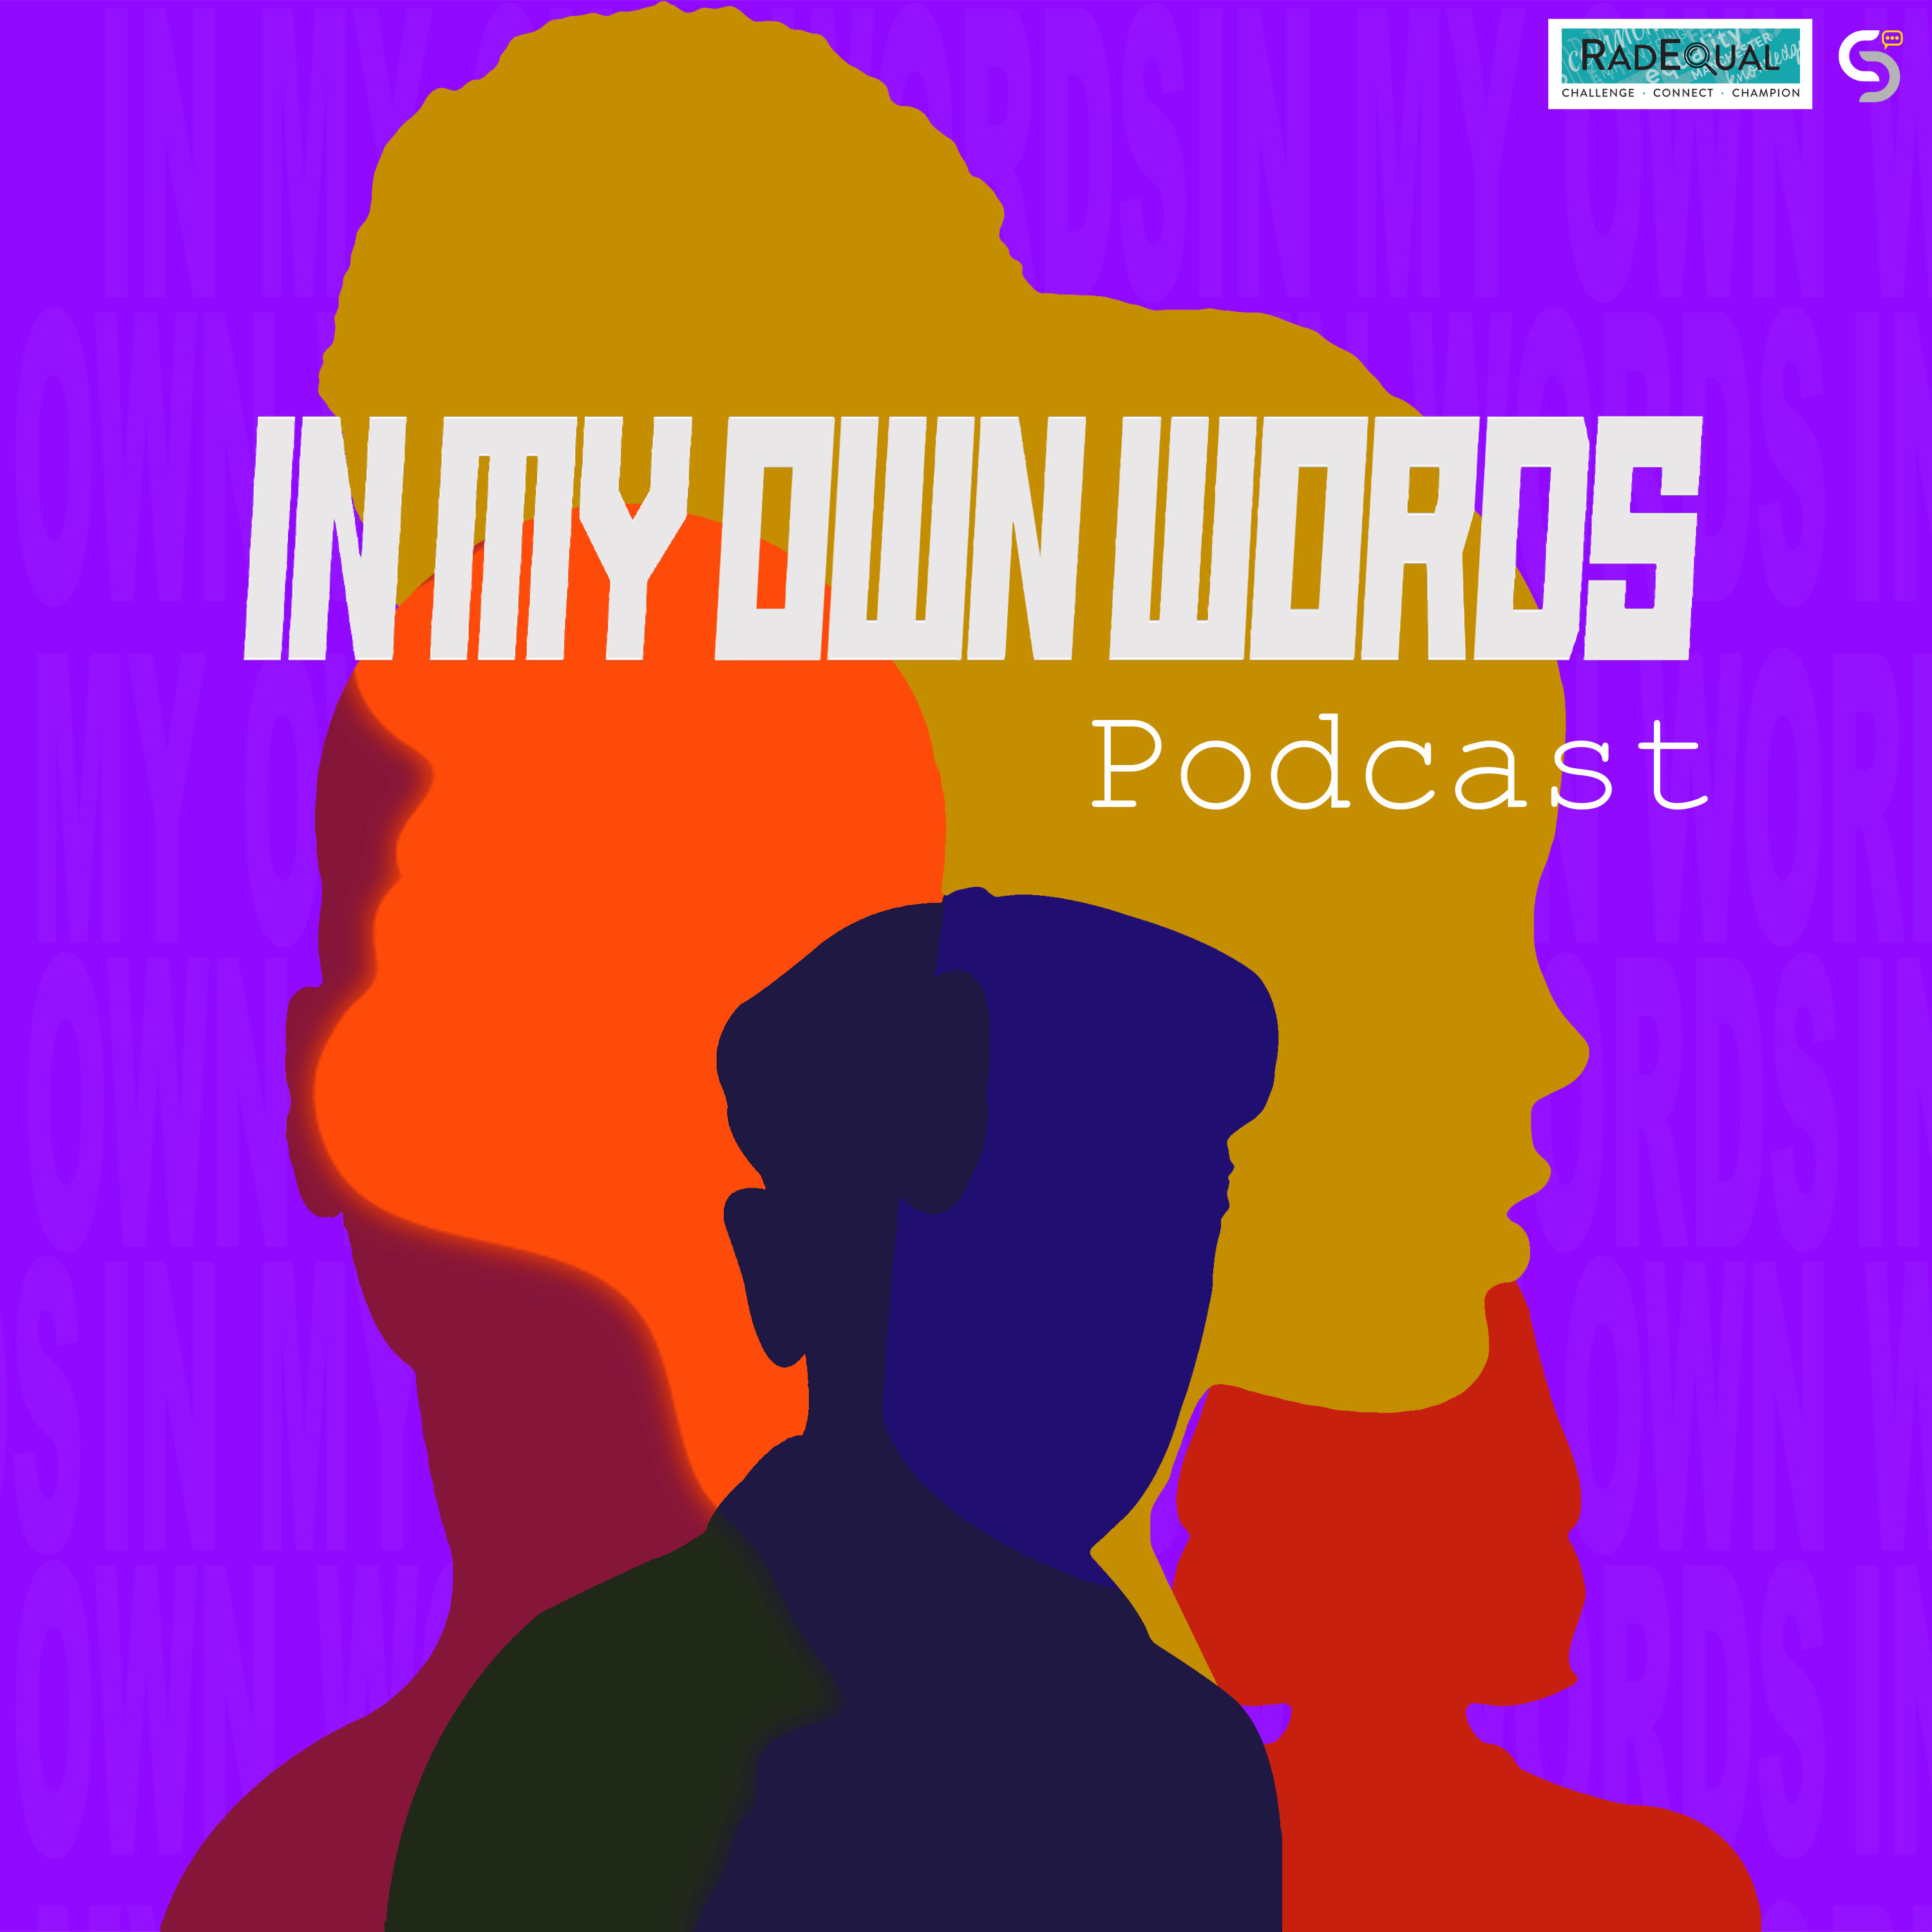 'In my own words' with RADEQUAL